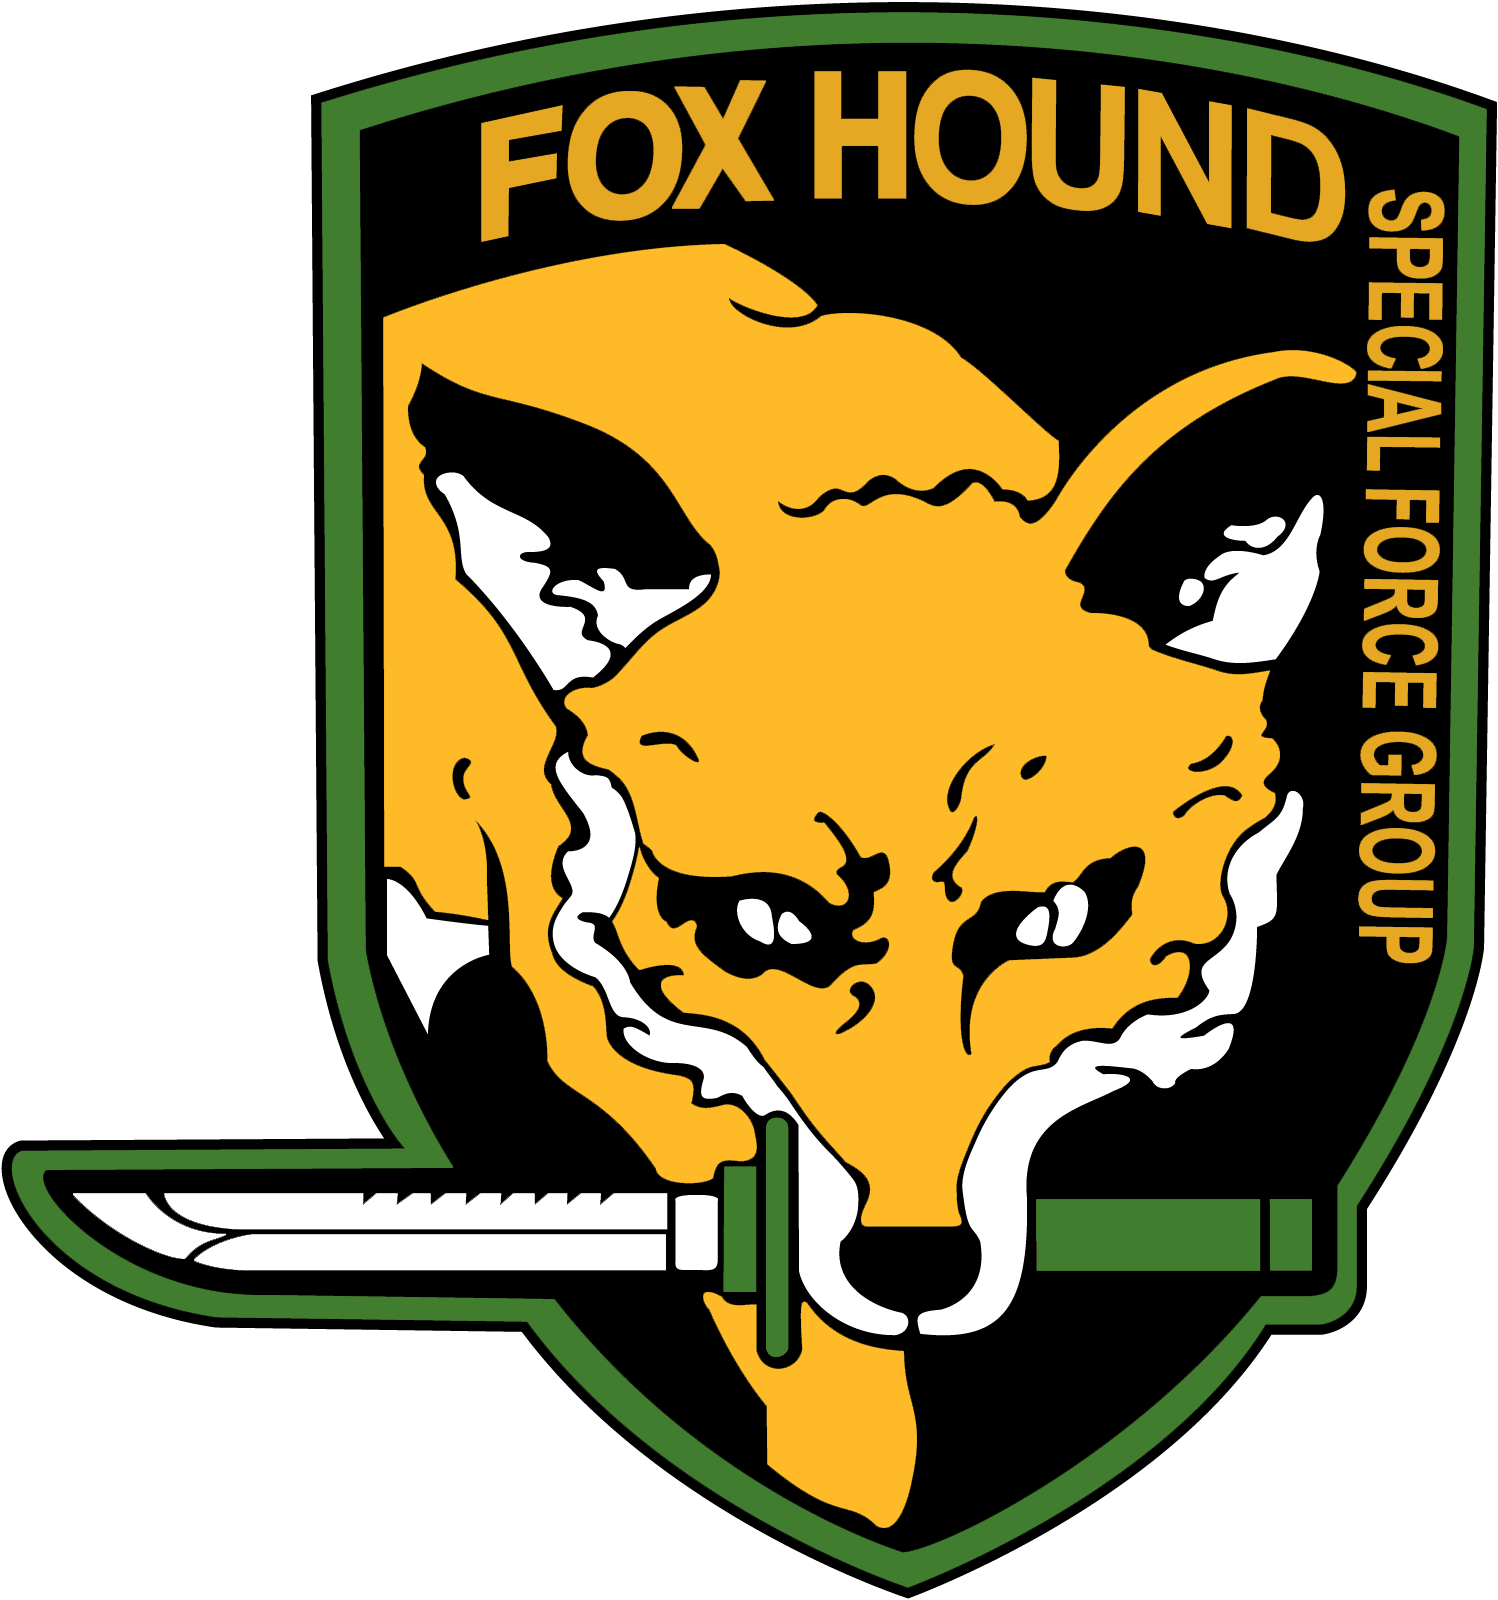 Image foxhound logo png. Dagger clipart special force jpg stock